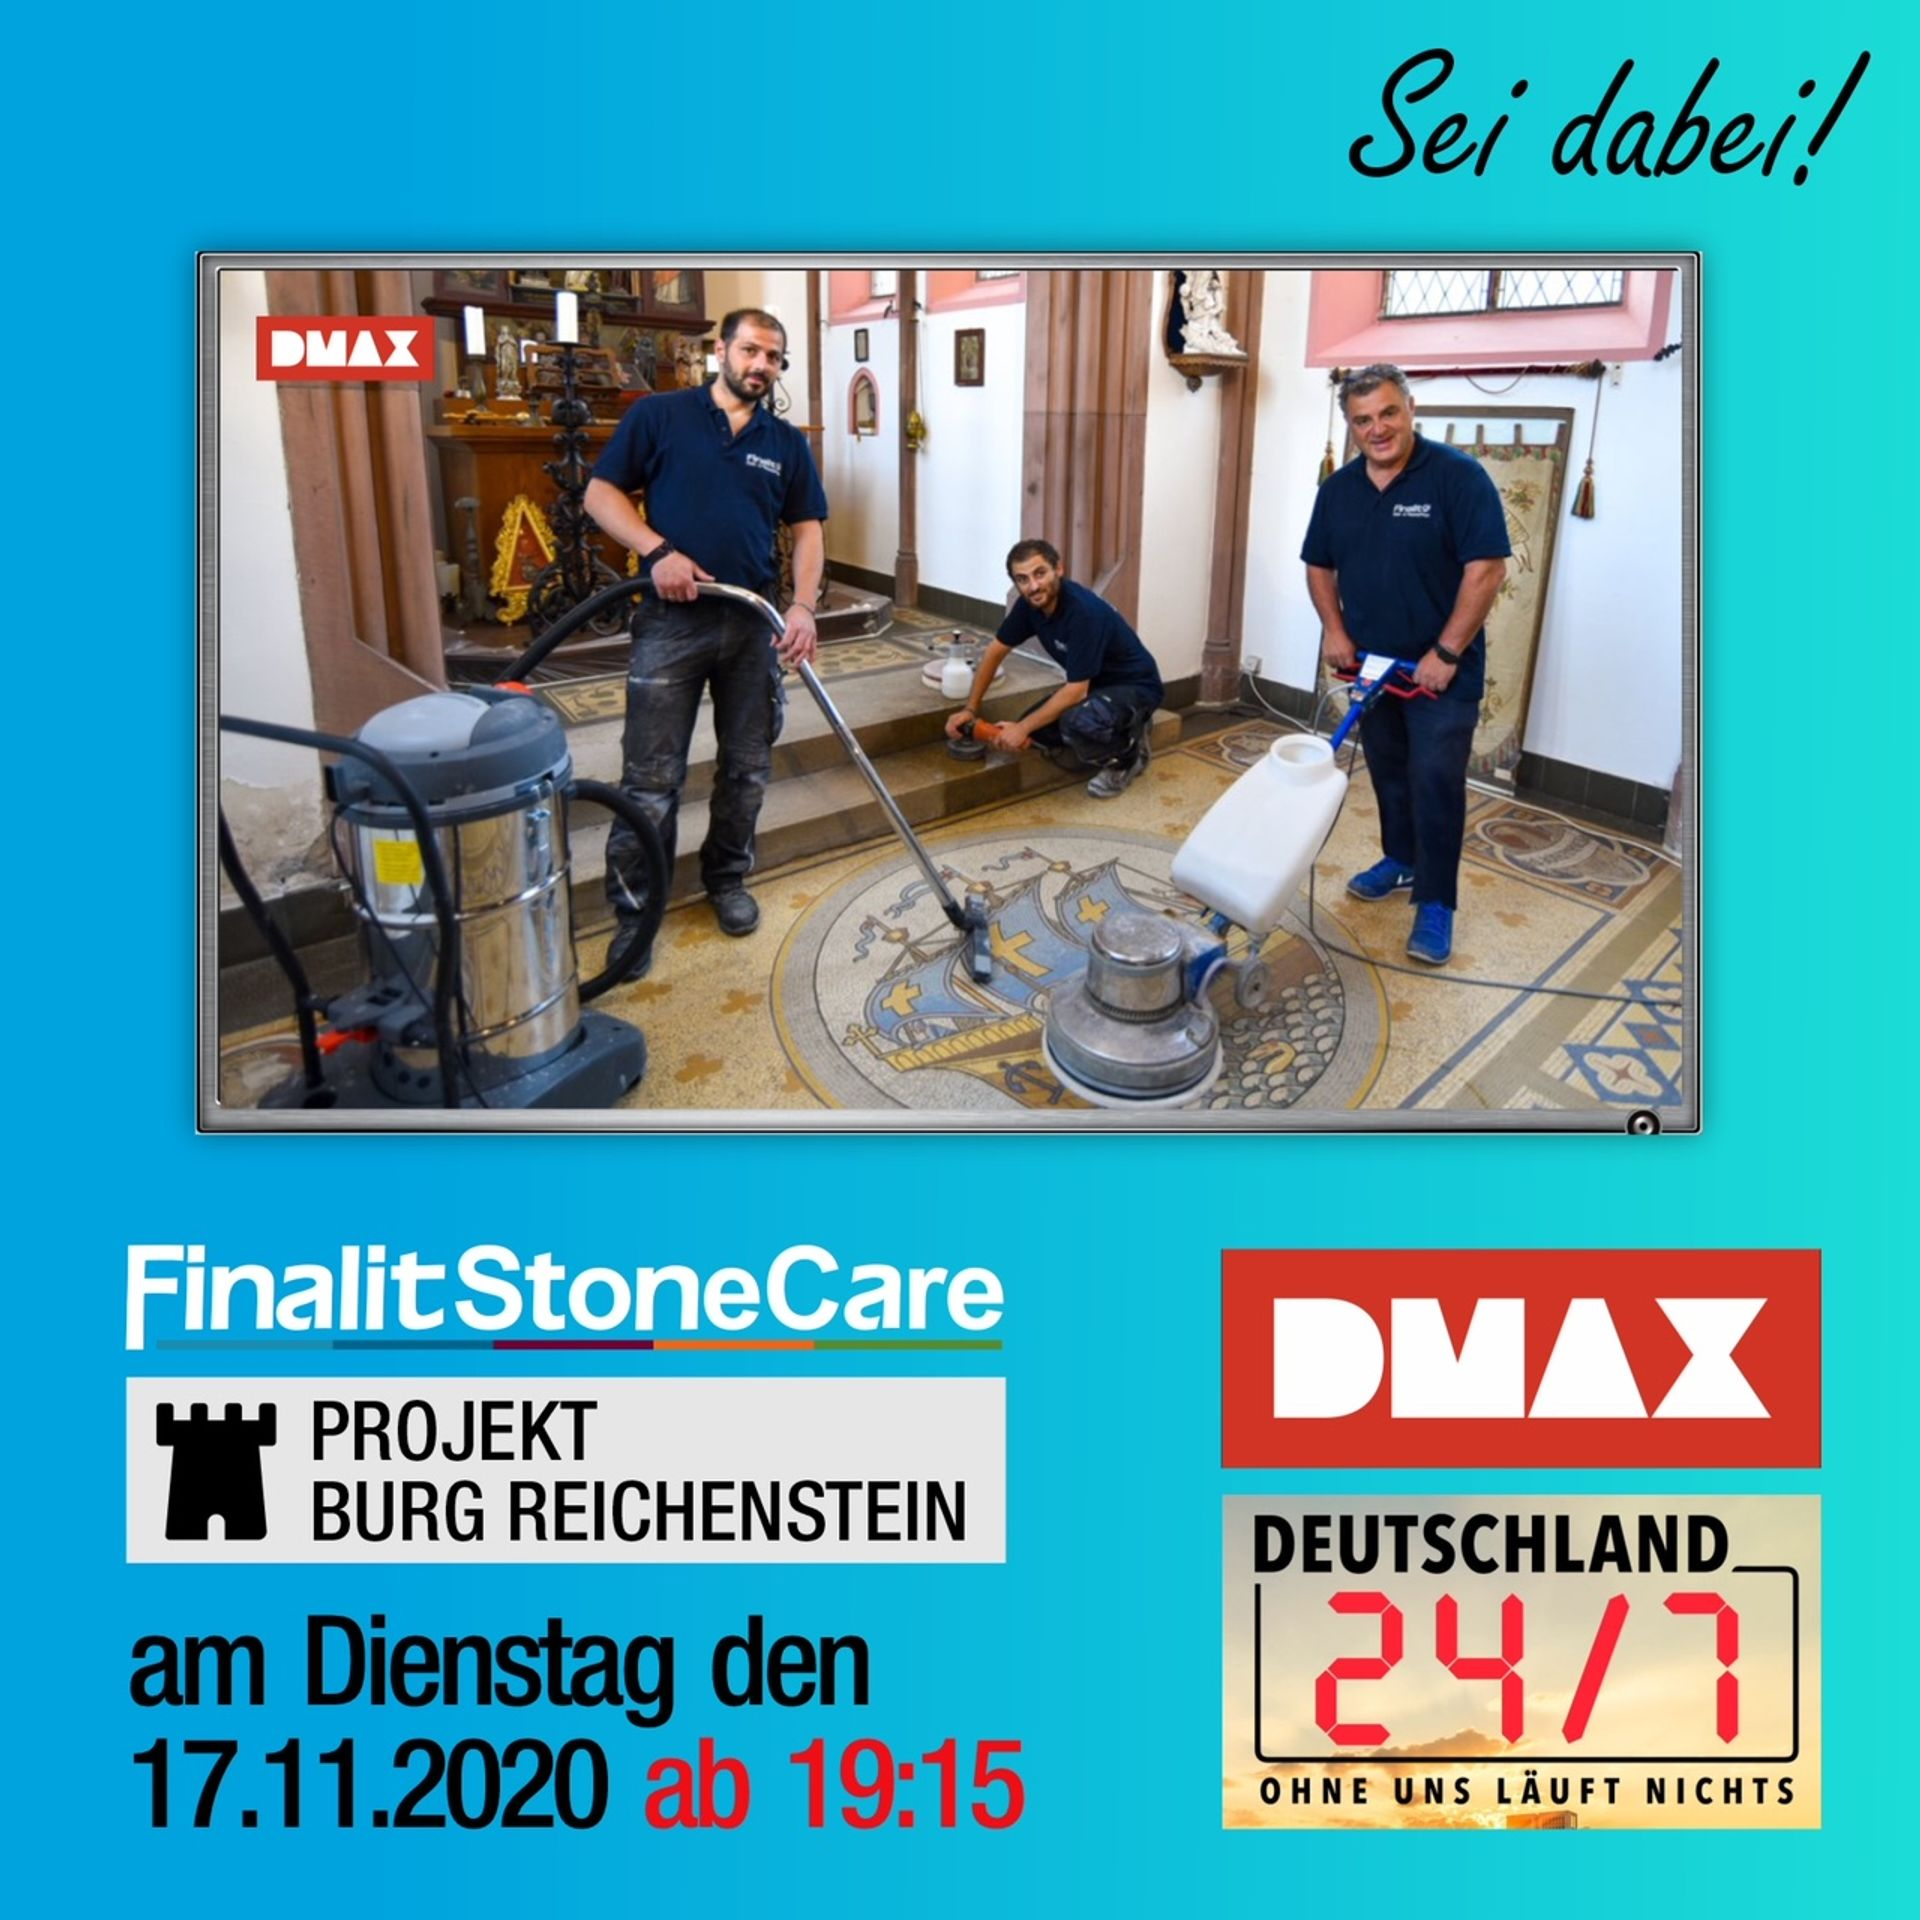 Finalit in Action bei DMAX am 17.11.2020 ab 19:15 Uhr